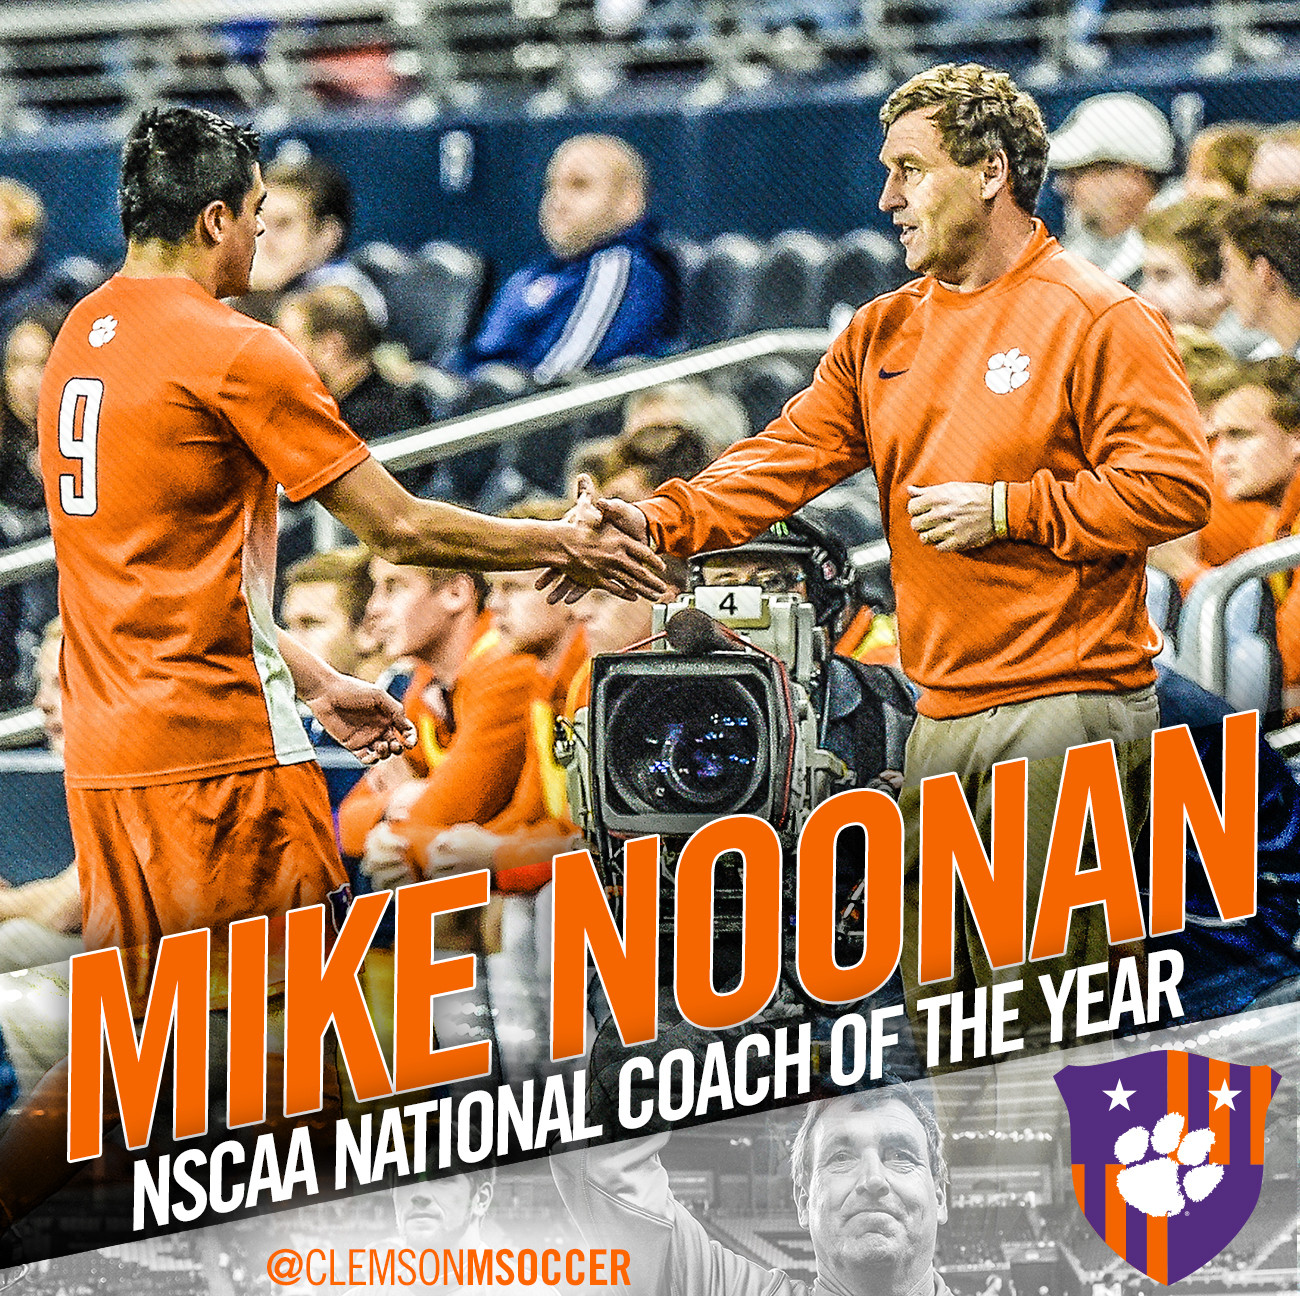 Noonan Named National Coach of the Year by NSCAA